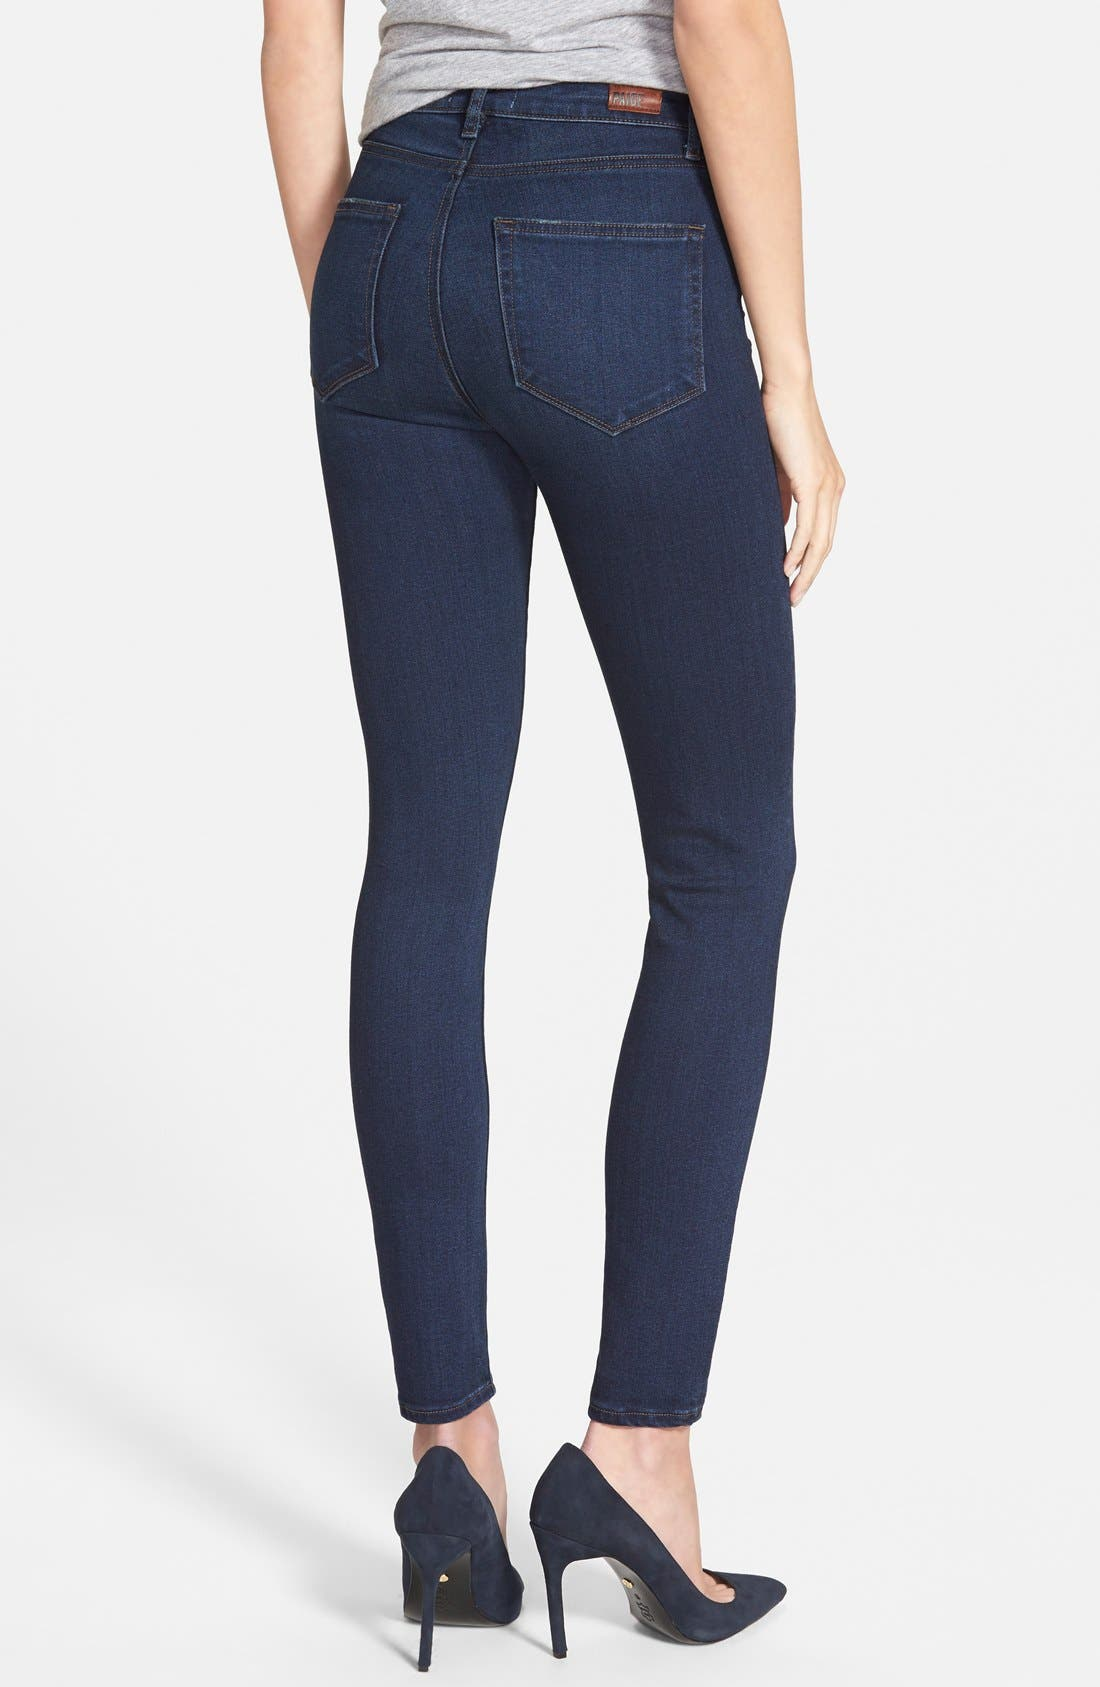 Alternate Image 3  - Paige Denim 'Hoxton' High Rise Ultra Skinny Jeans (Takara) (Nordstrom Exclusive)